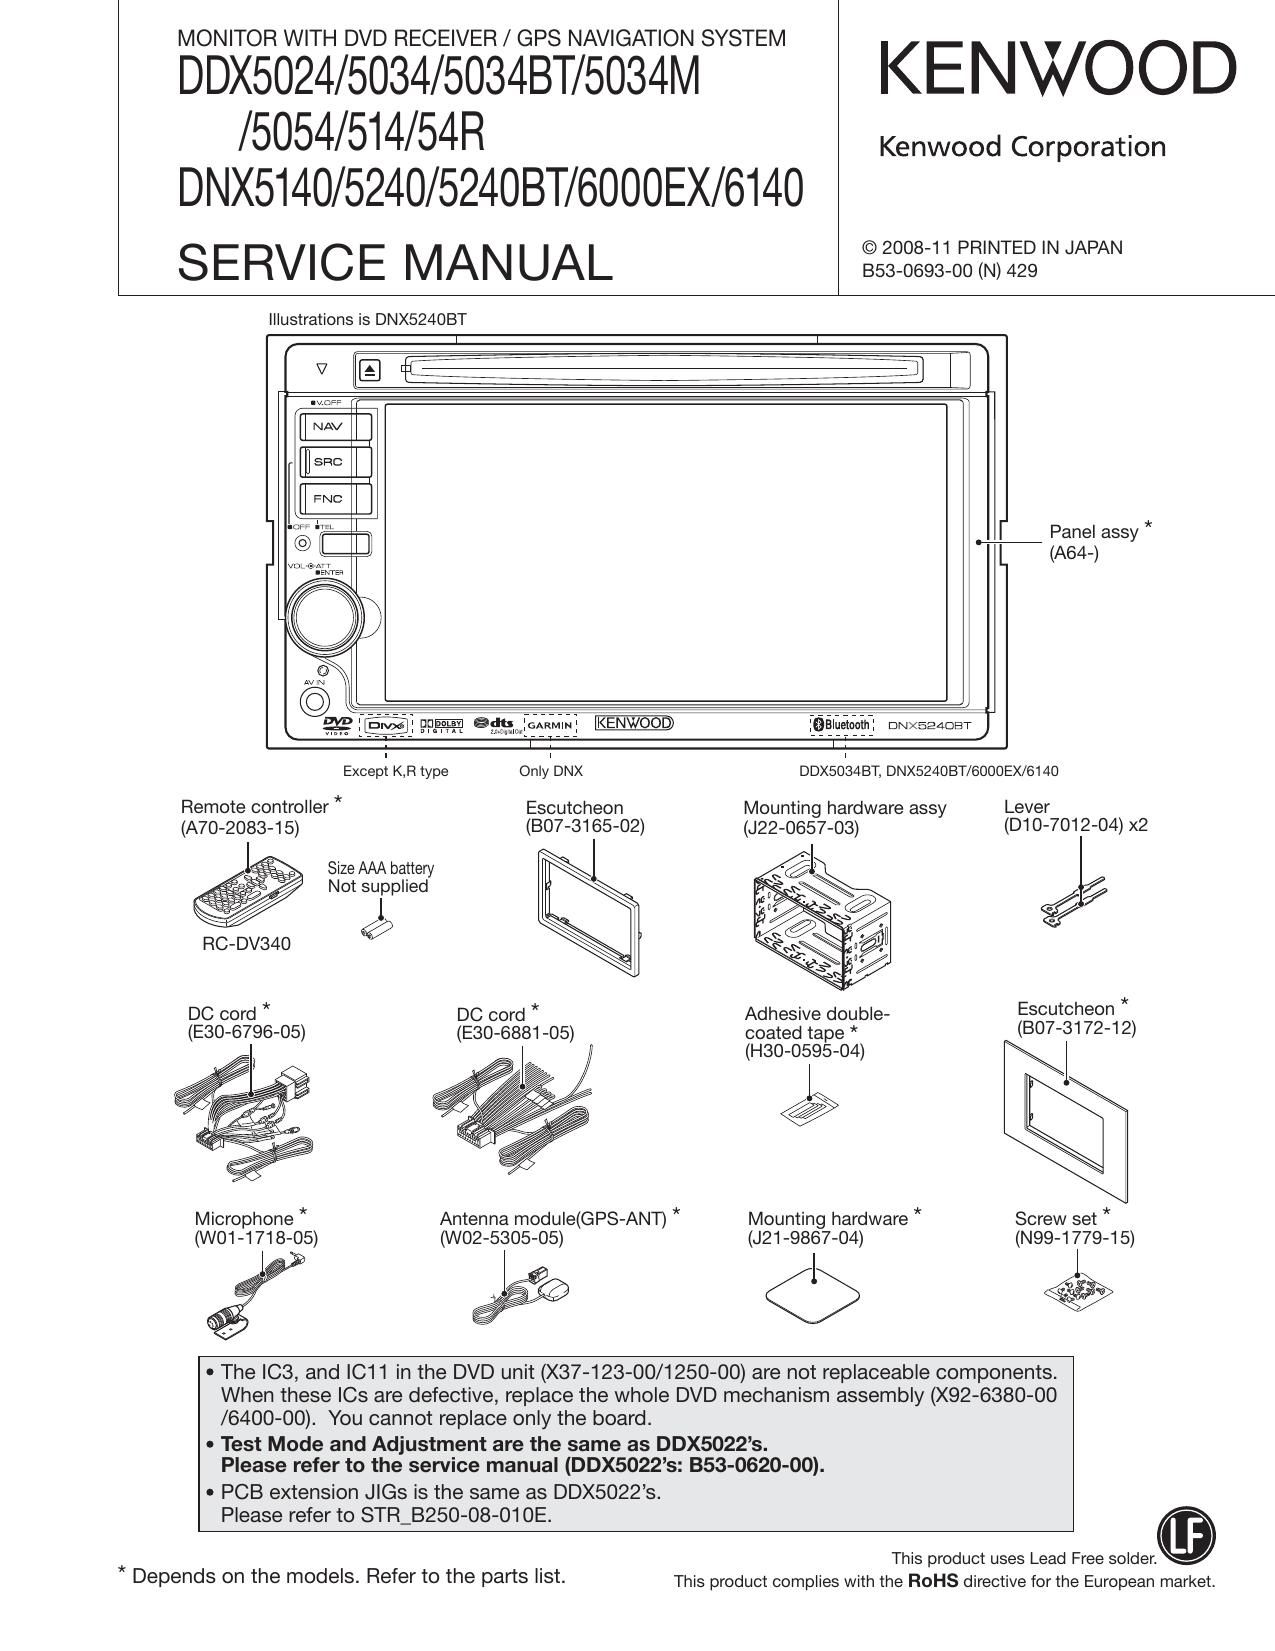 kenwood dnx 5240 service manual rh audioservicemanuals com